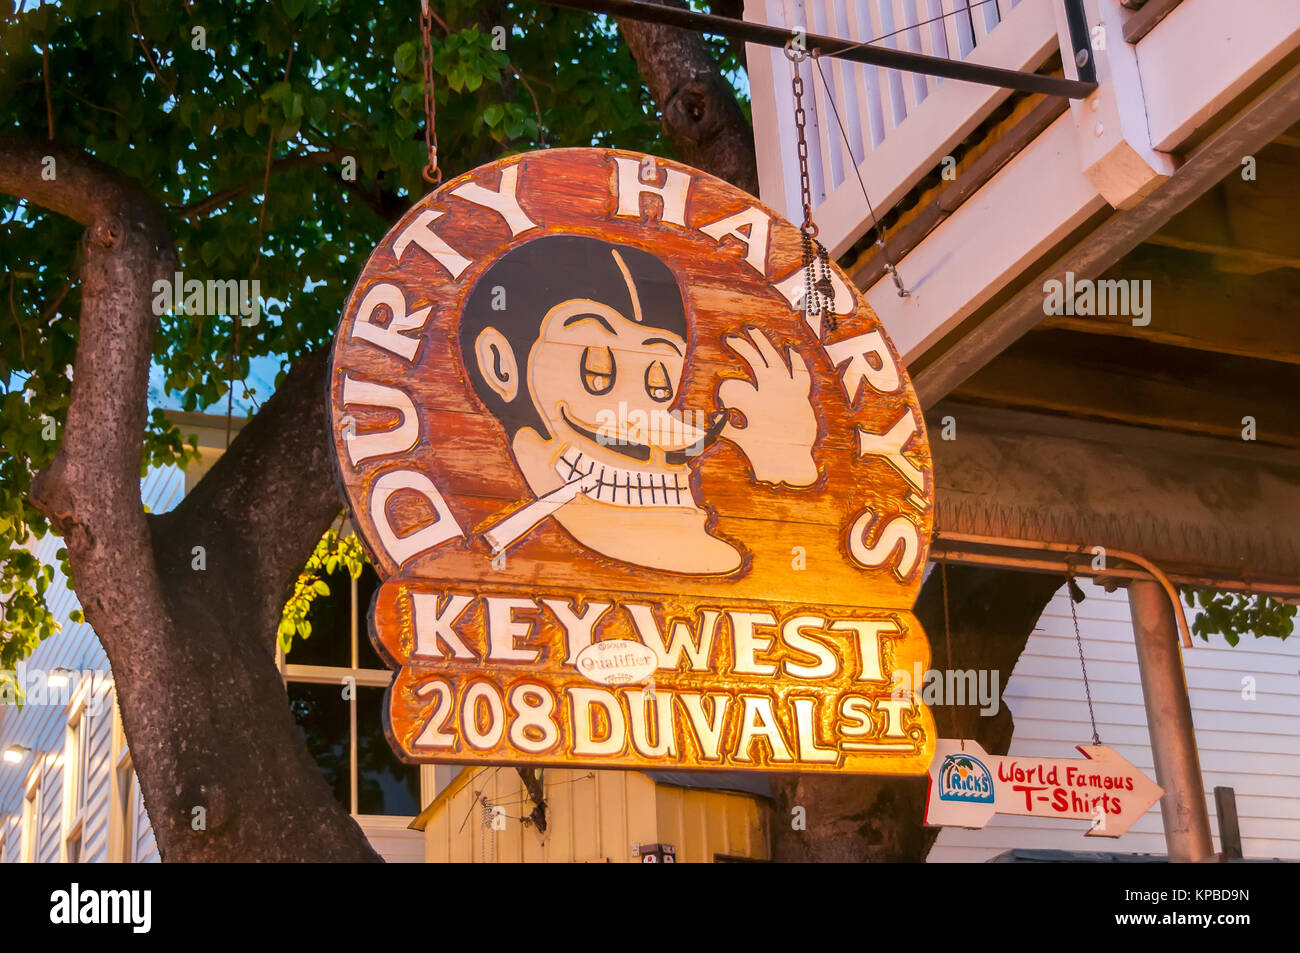 Durty Harrys Bar features rock music and live performances, Duval Street Key West Florida - Stock Image